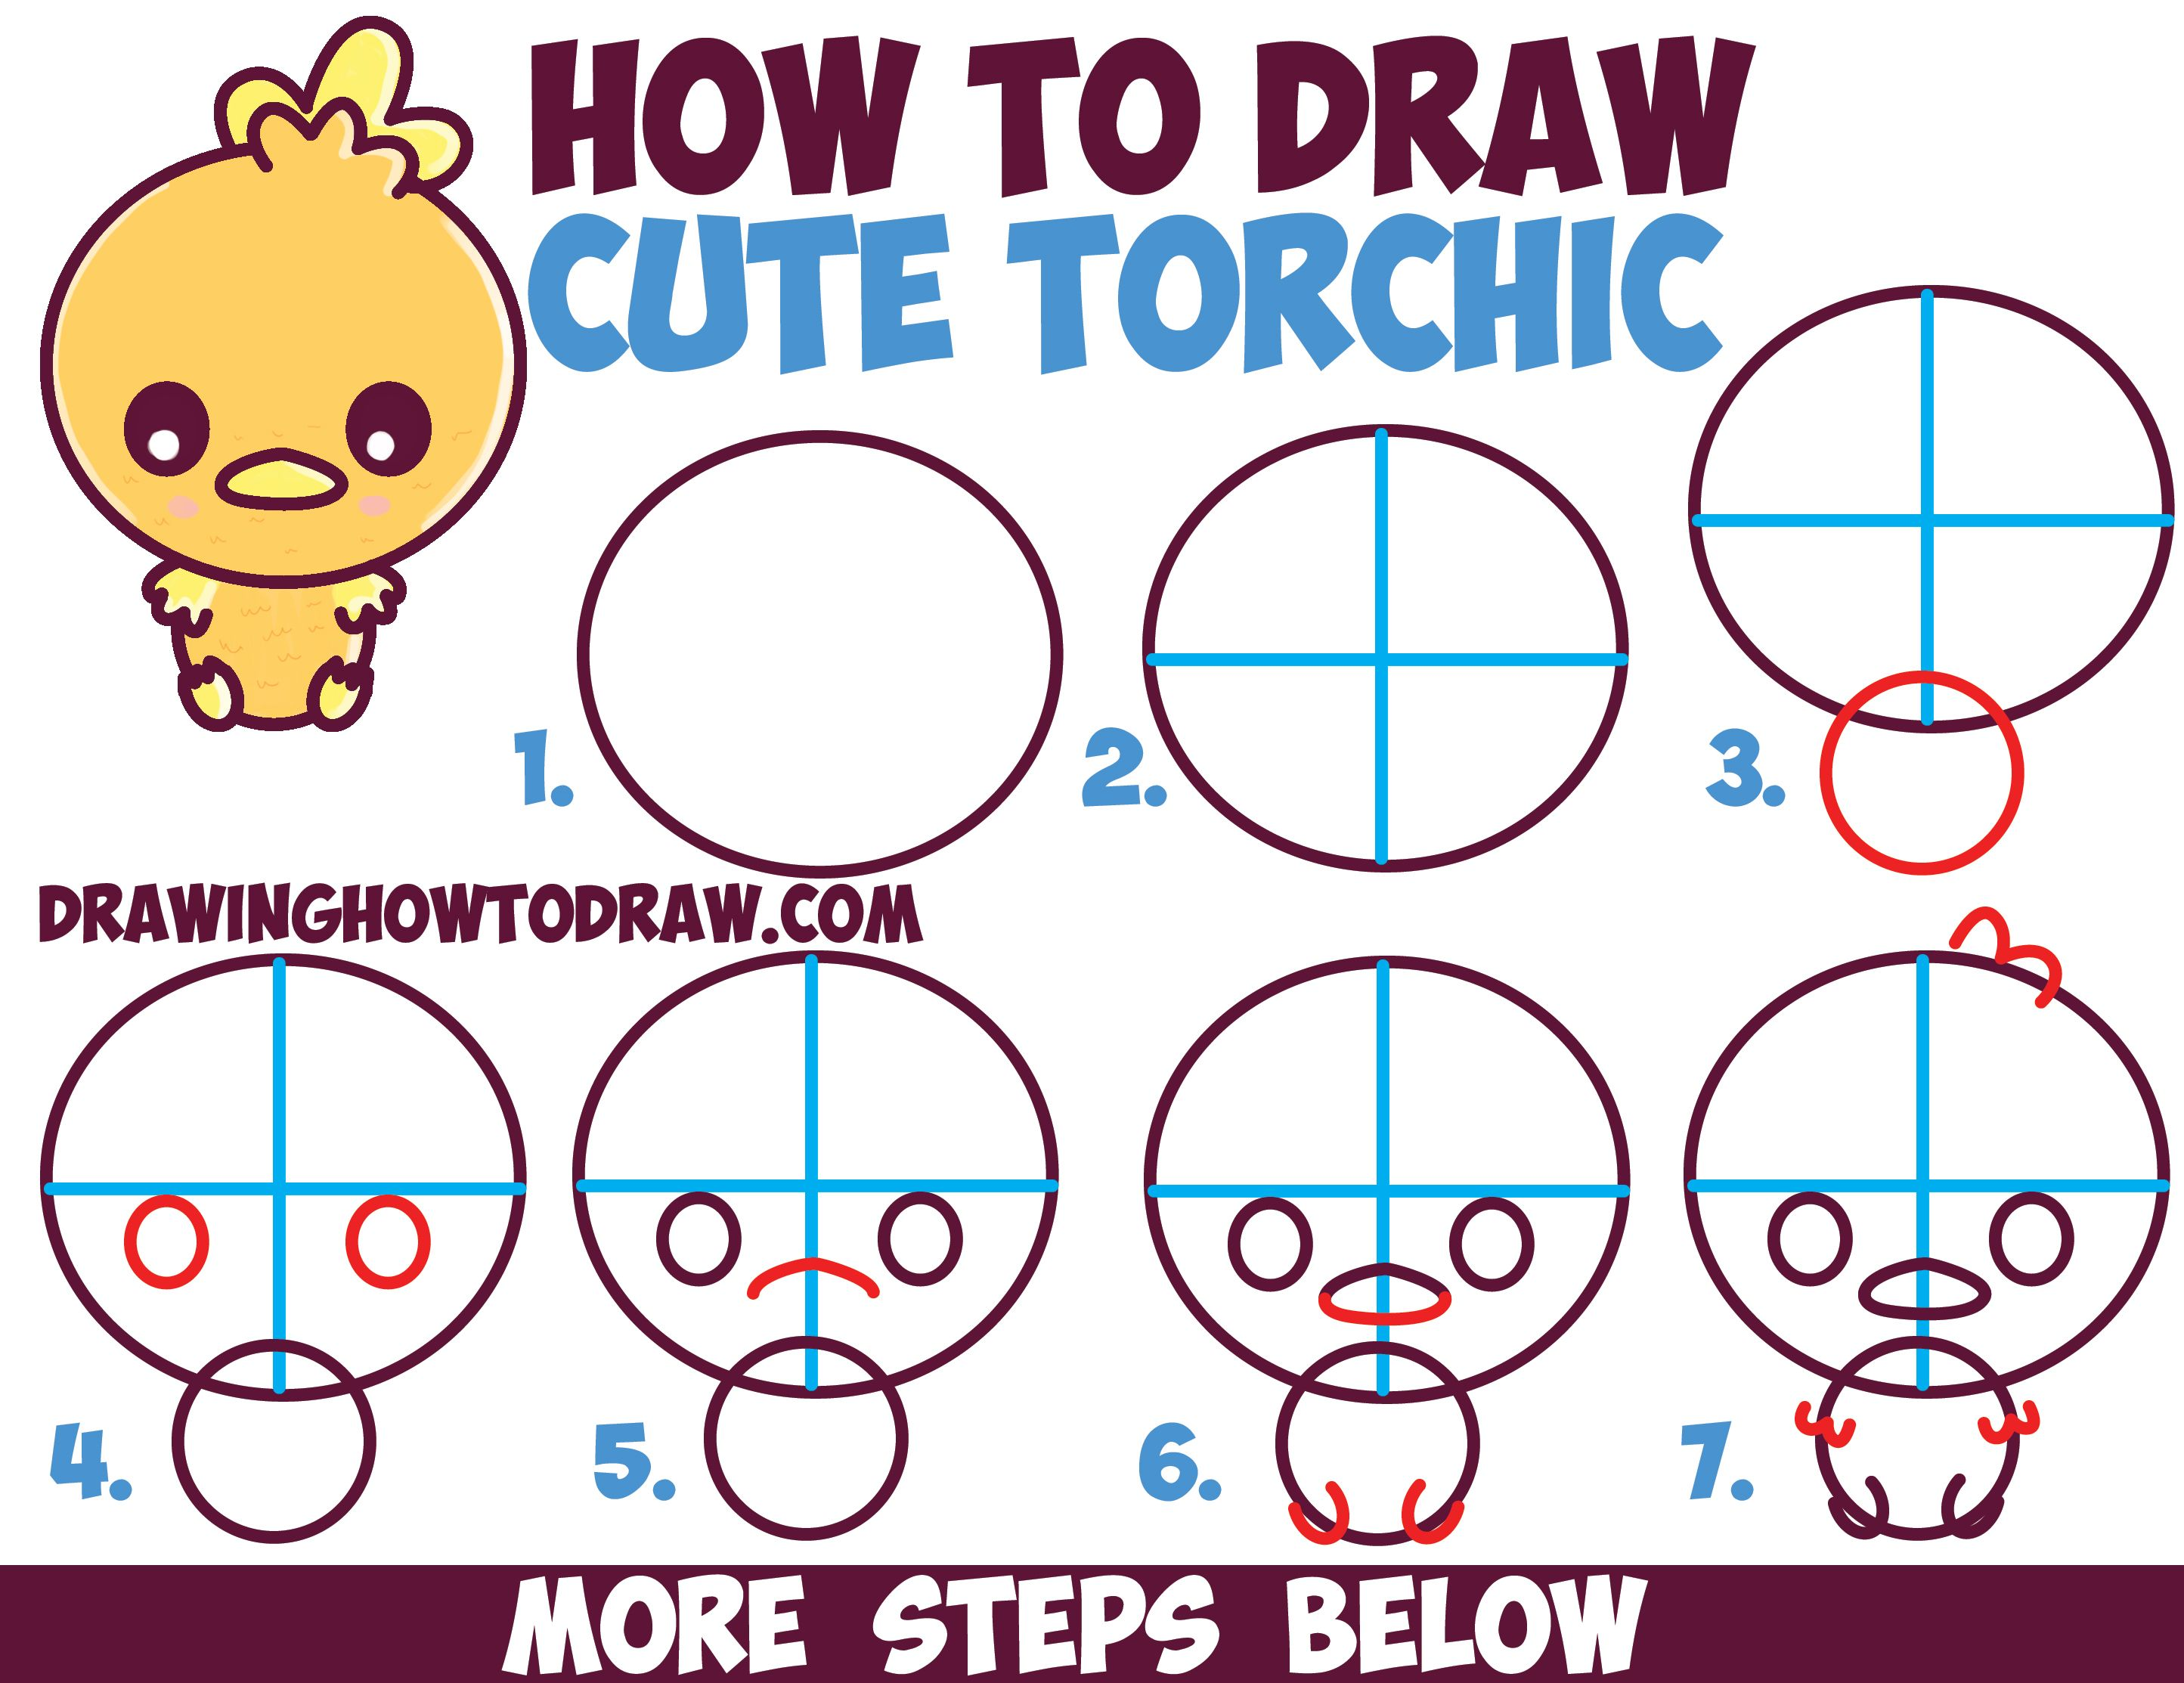 How to draw cute torchic from pokemon chibi kawaii for How to draw cute stuff step by step